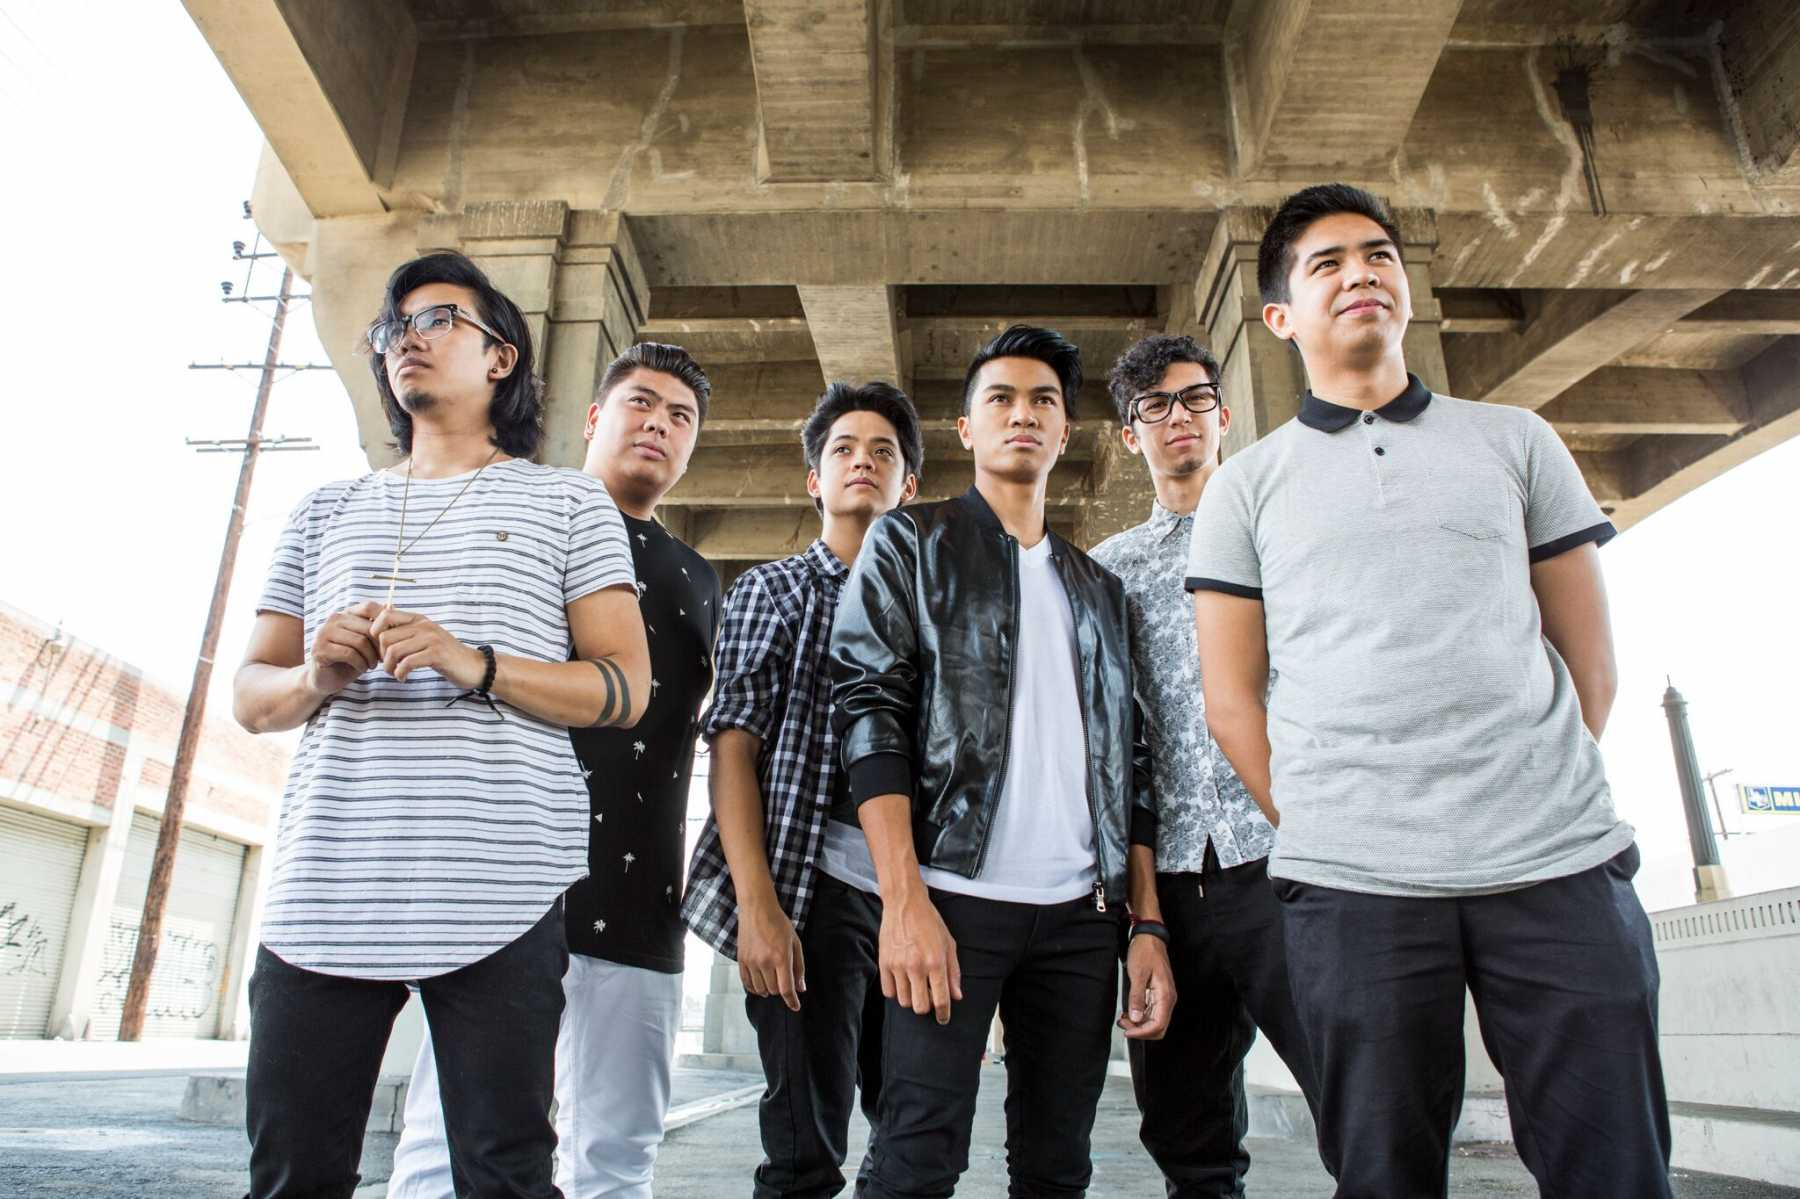 Exclusive: The Filharmonic Discuss A Cappella And Musical Ambitions | Filharmonic